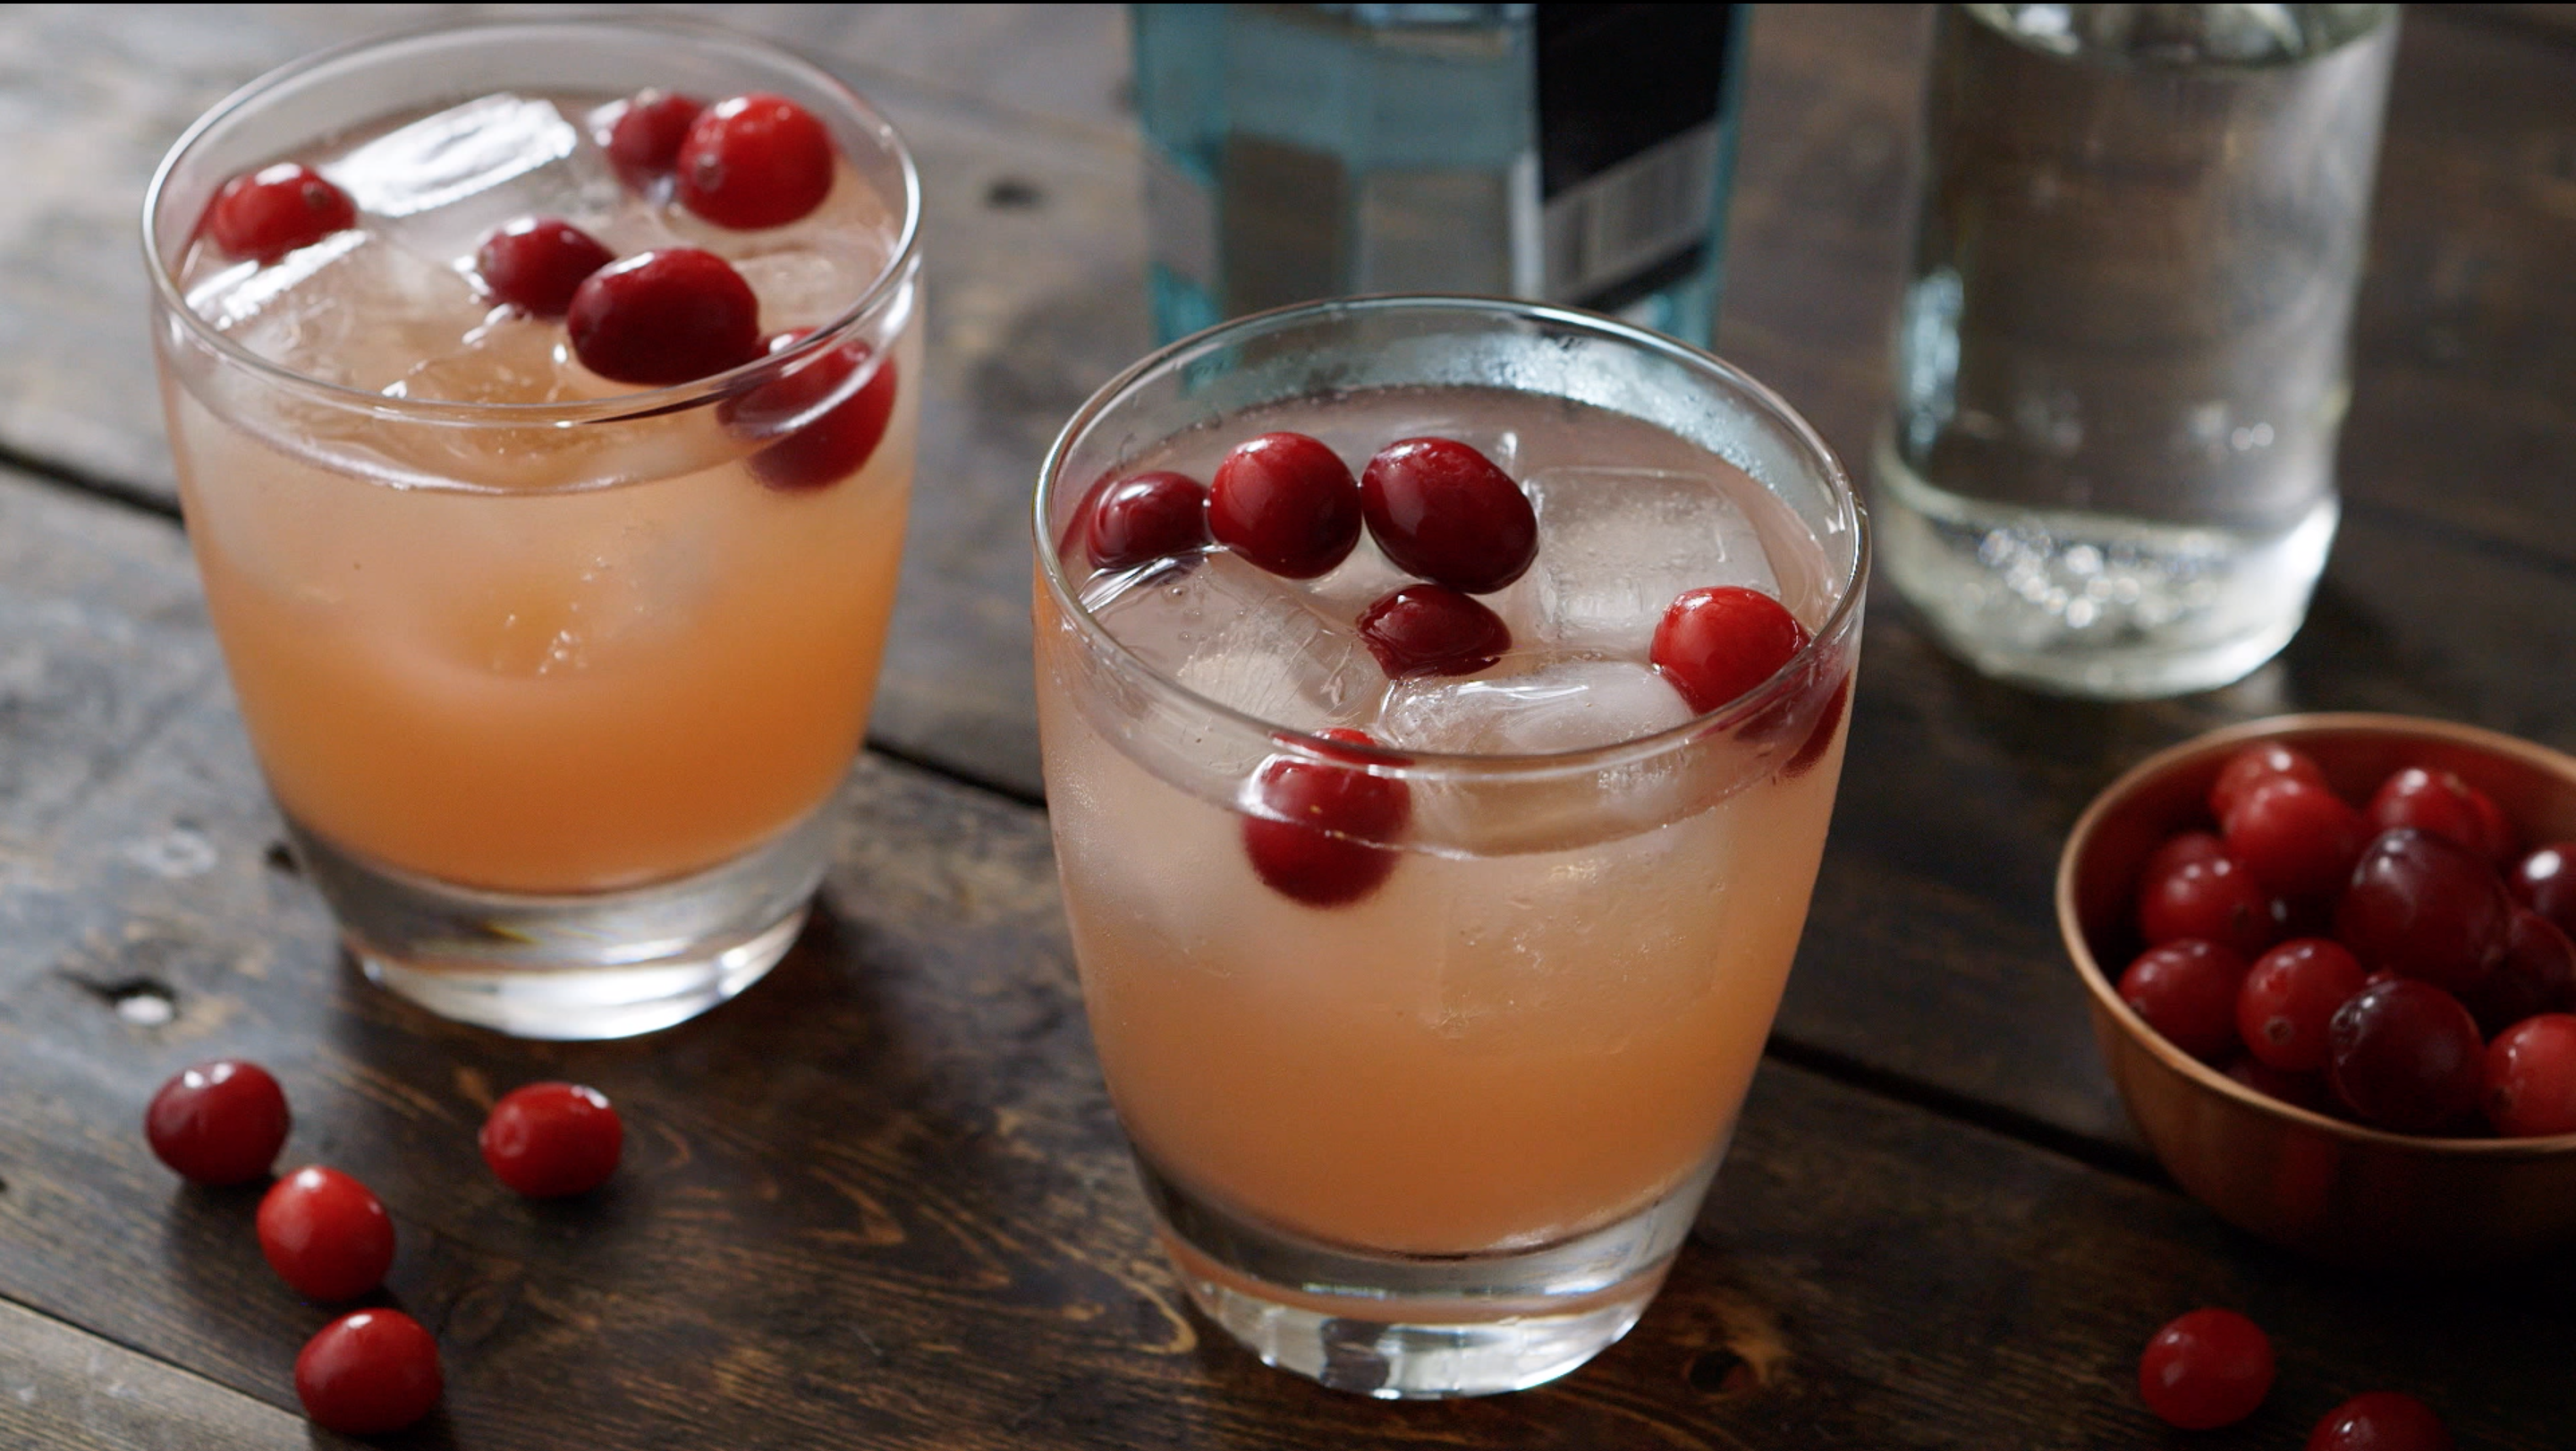 Cocktail of the Week: Cranberry Vanilla Gin Spritzer